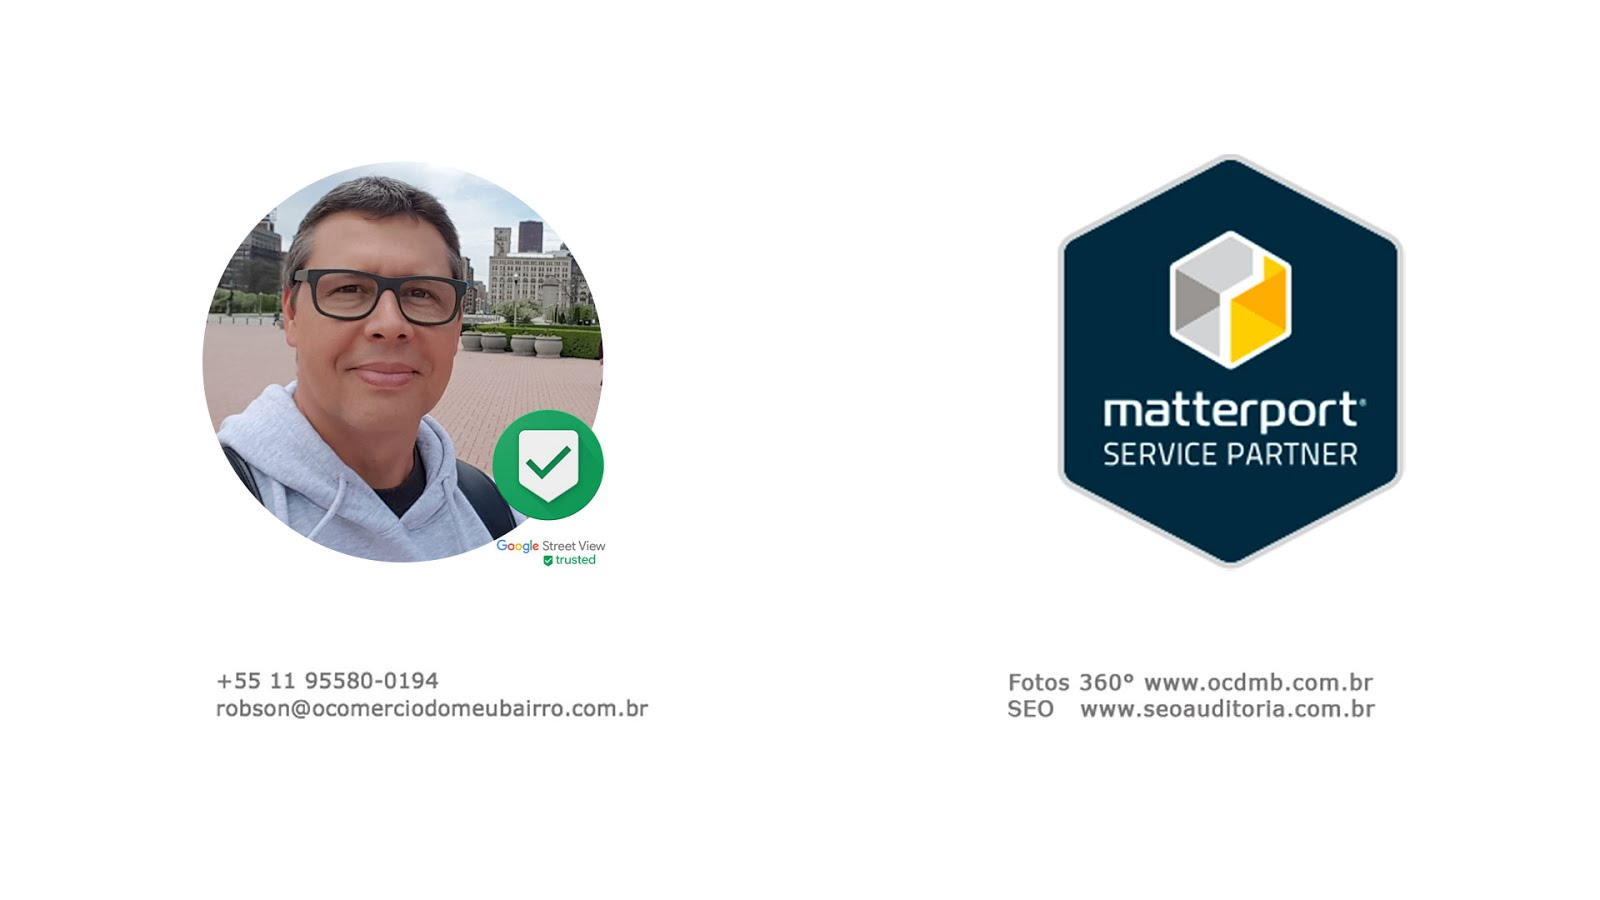 Robson Real |  Tour Virtual 3D  Matterport Parceiro Oficial | Fotógrafo Google Street View Trusted